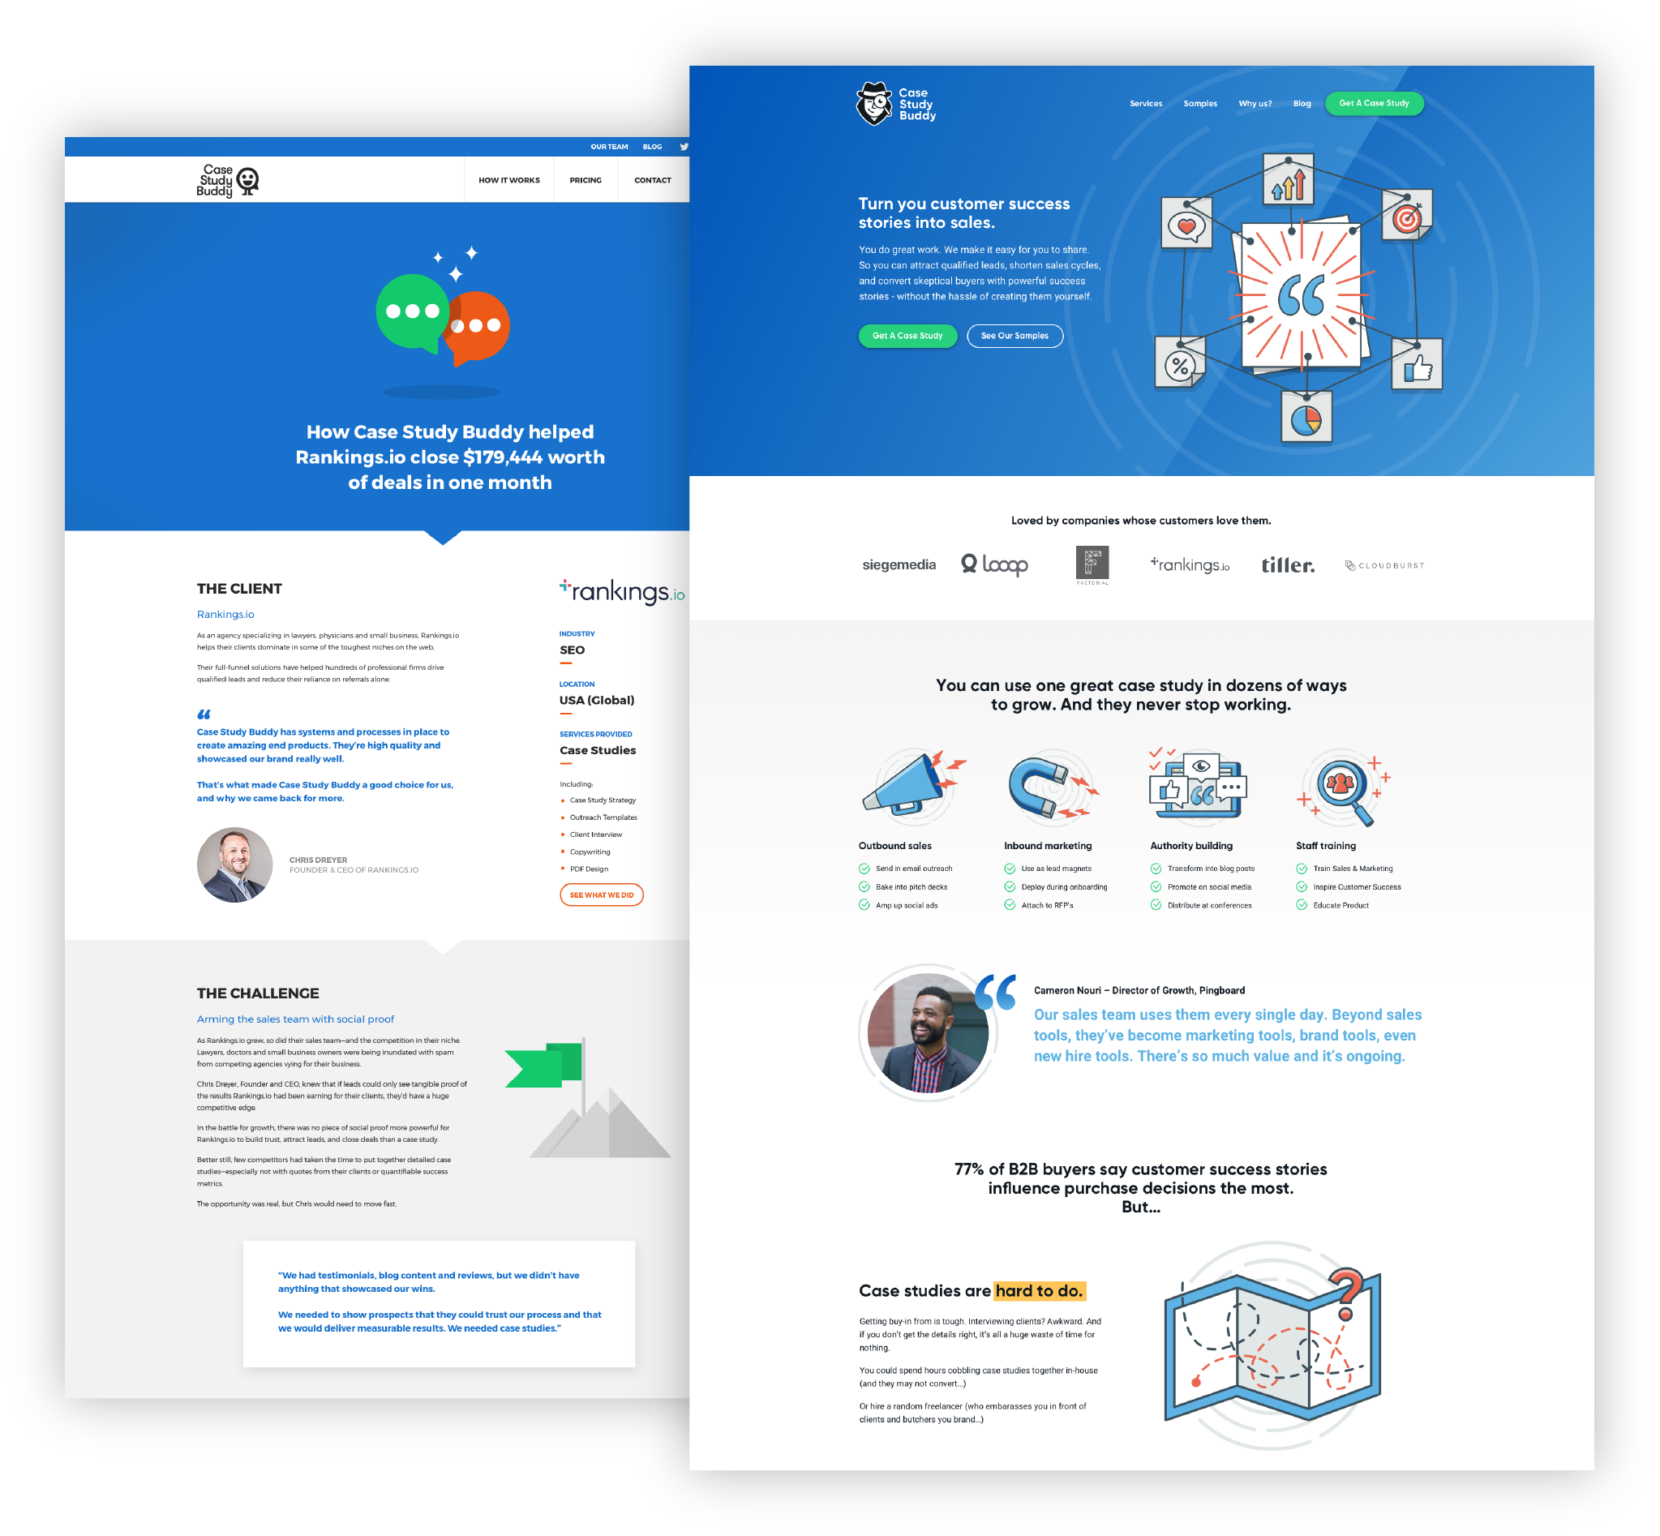 Case Study Buddy website before and after rebranding